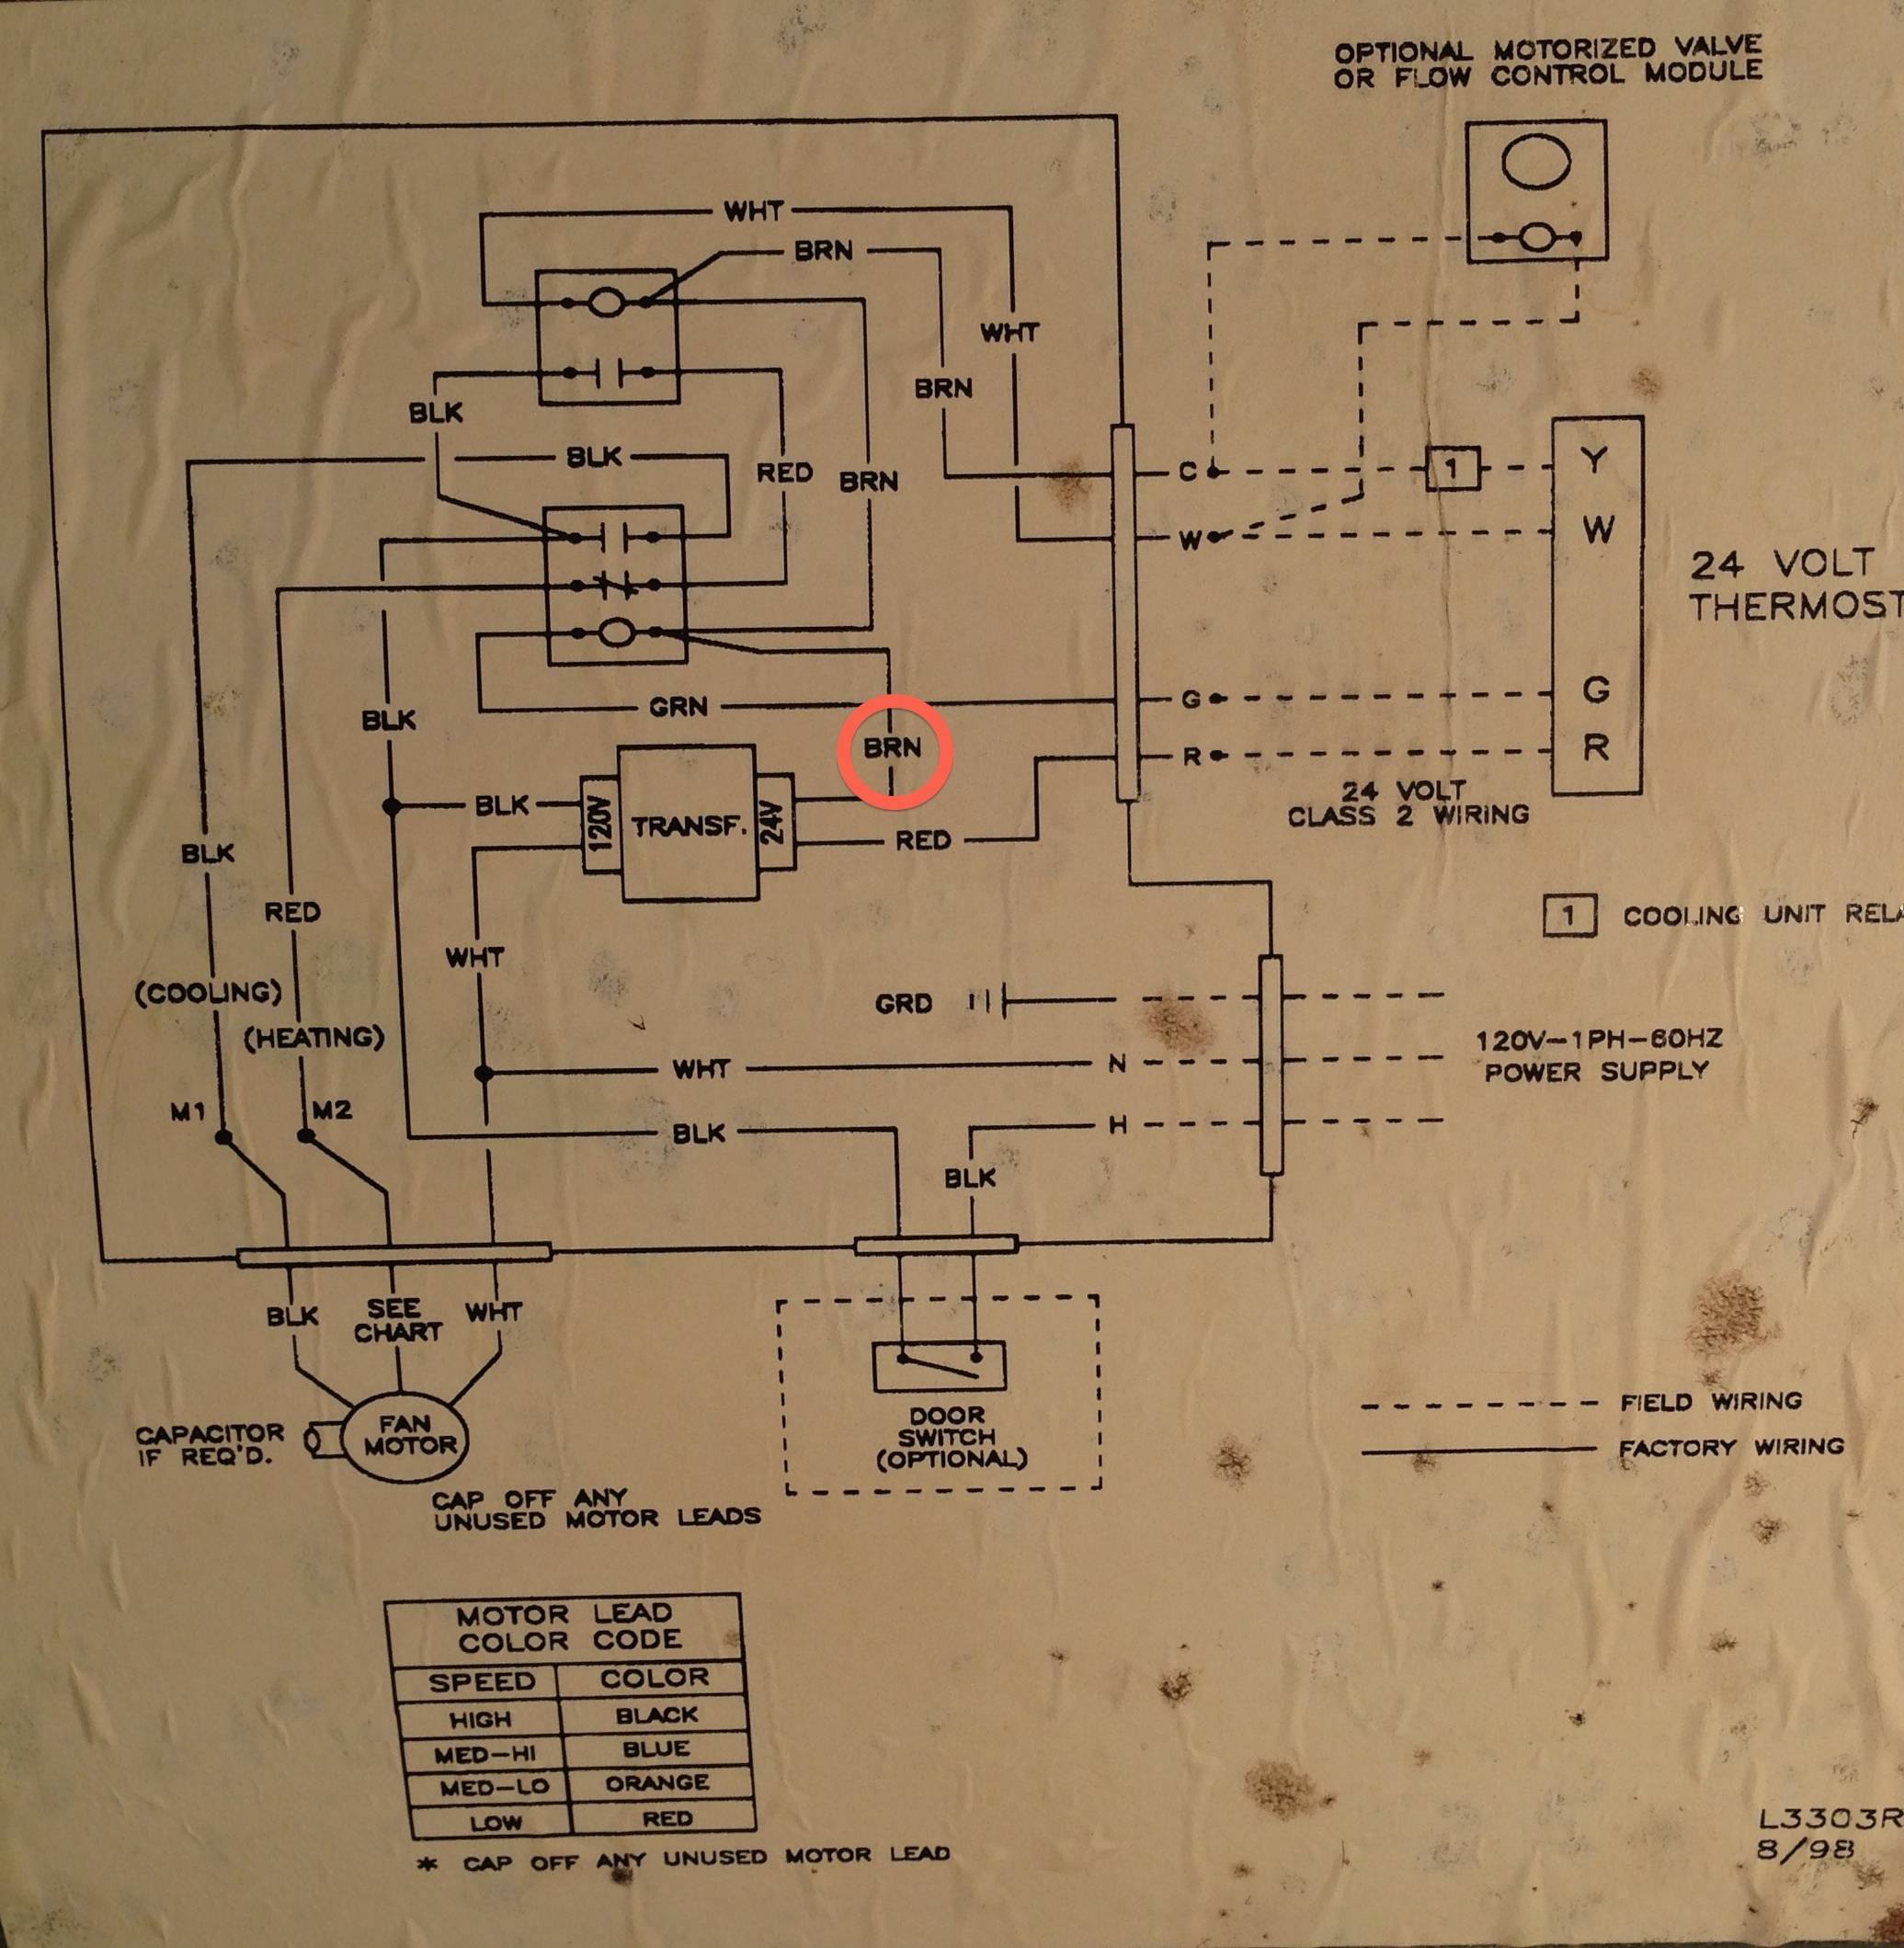 First Company Air Handler Wiring Diagram | Wiring Diagram - First Company Air Handler Wiring Diagram